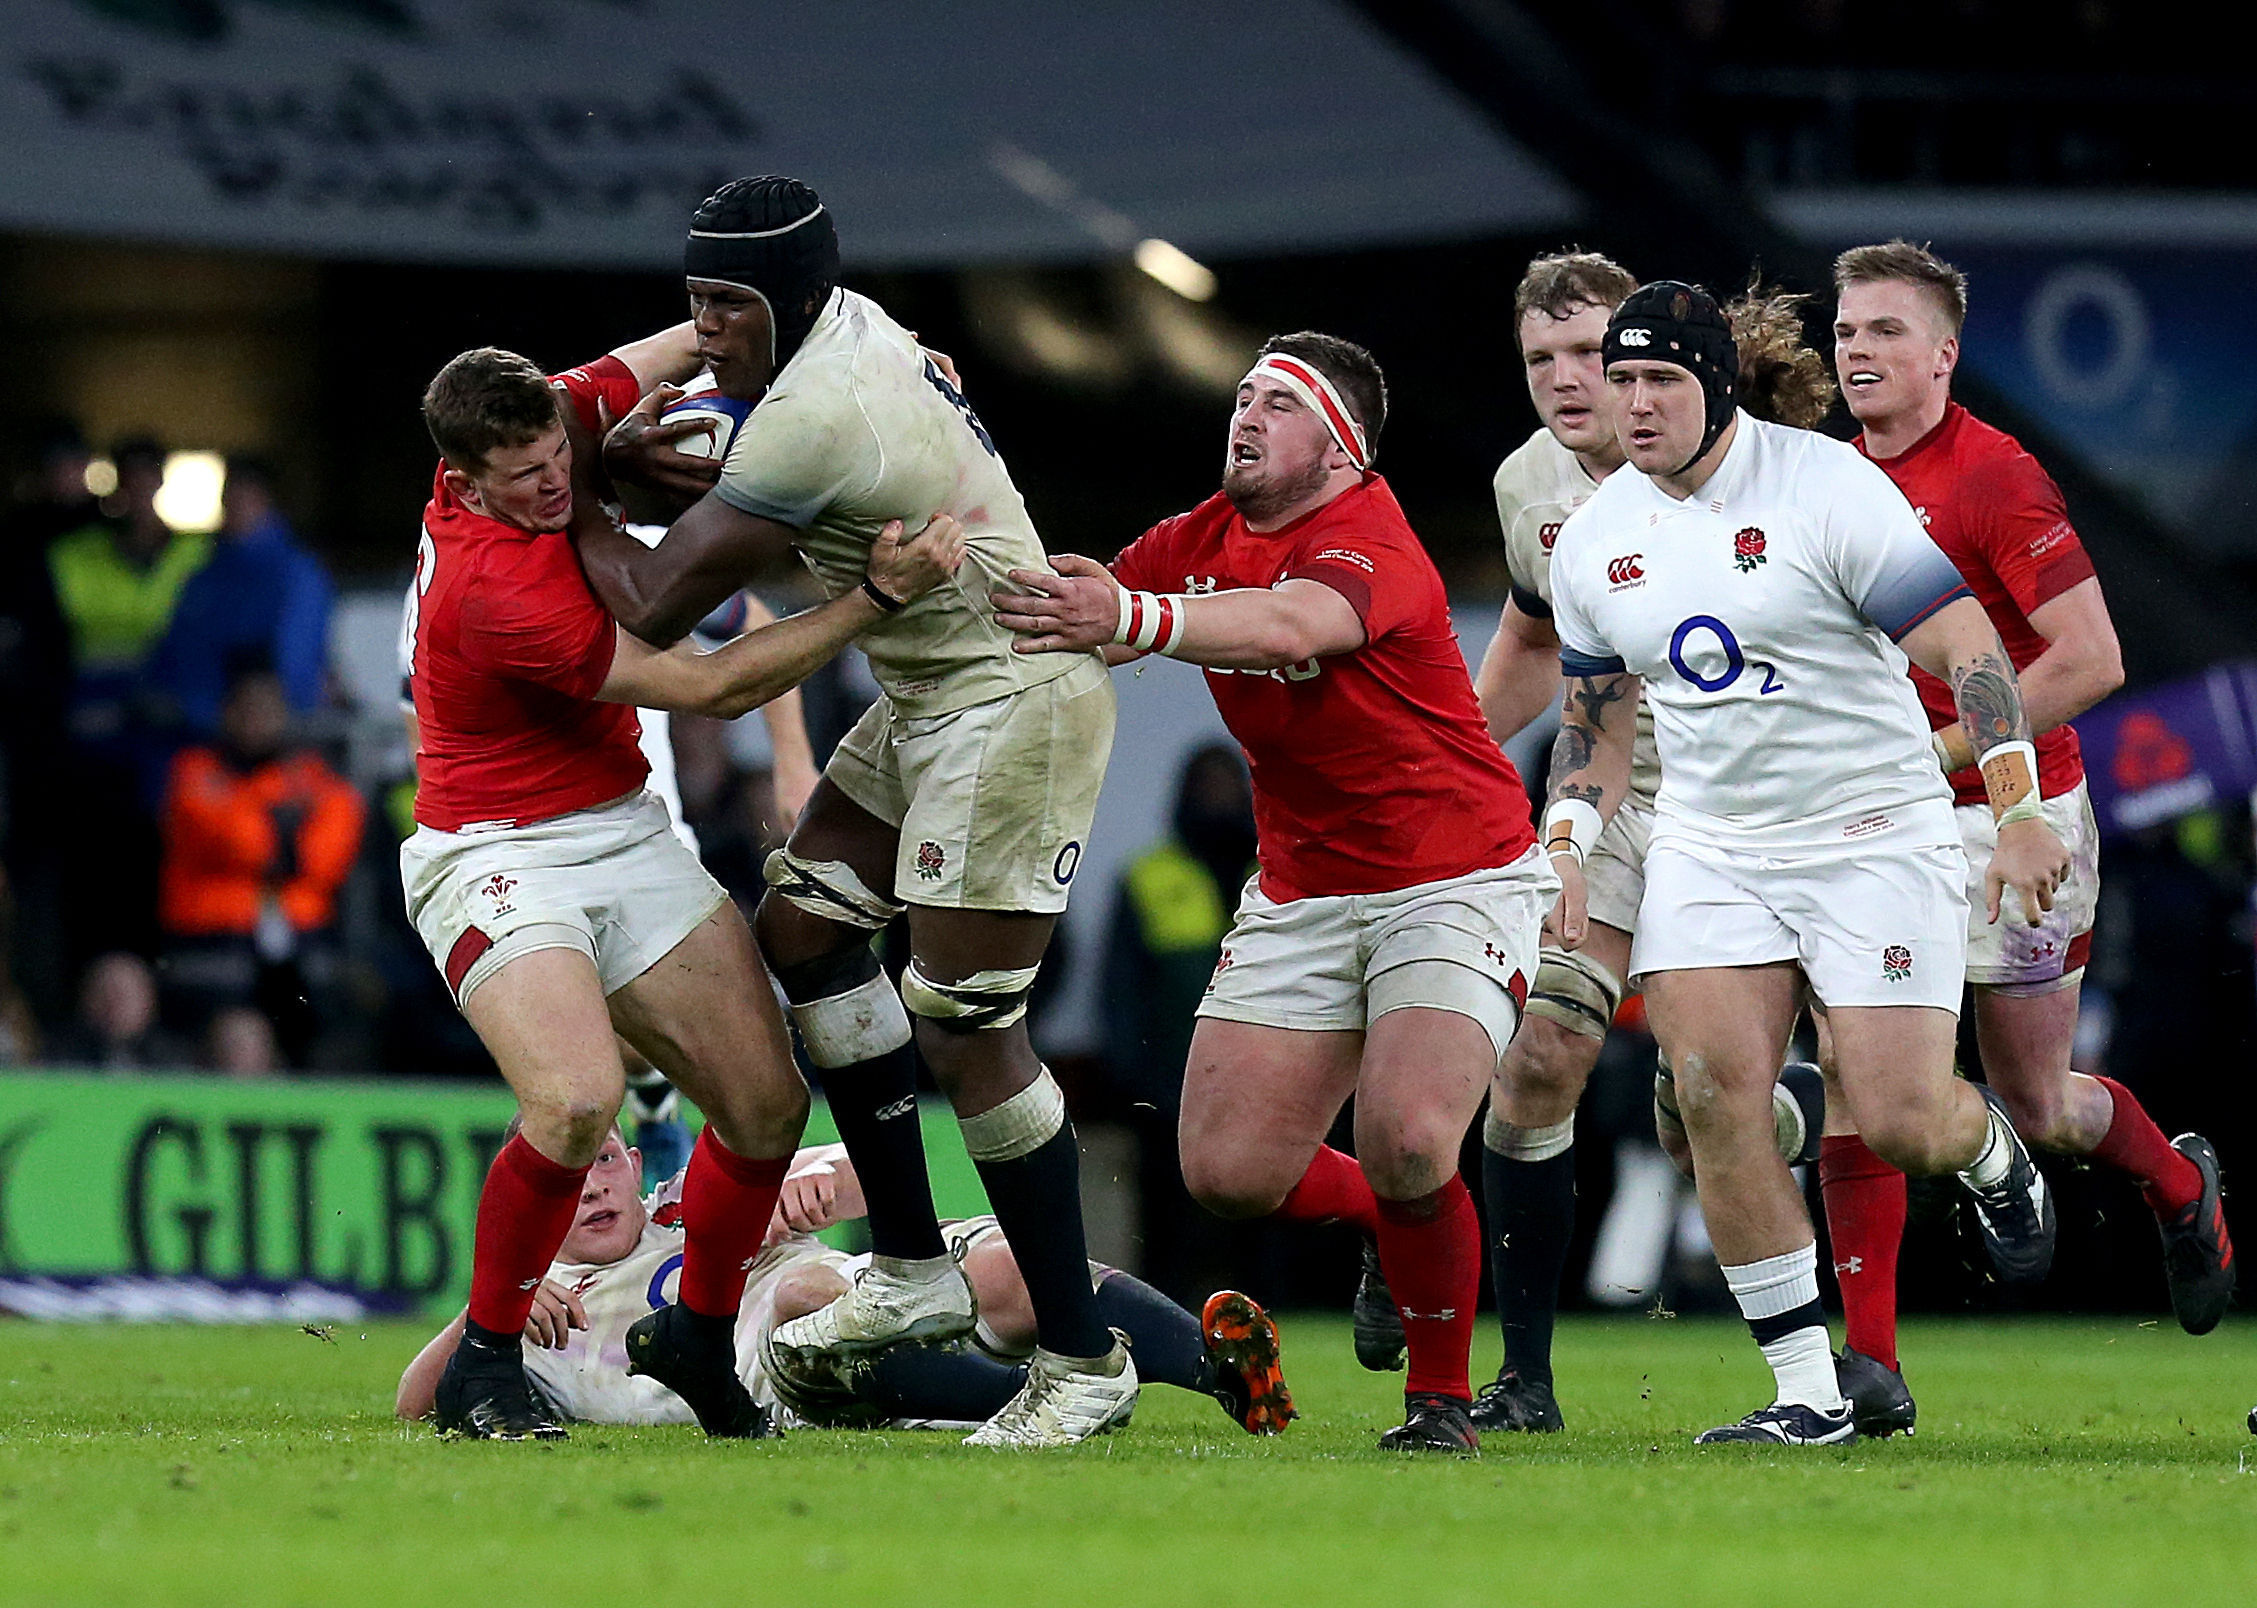 CHANCE TO SHINE: Dragons hooker Elliot Dee, pictured tackling Maro Itoje at Twickenham, is set to feature for Wales against Tonga